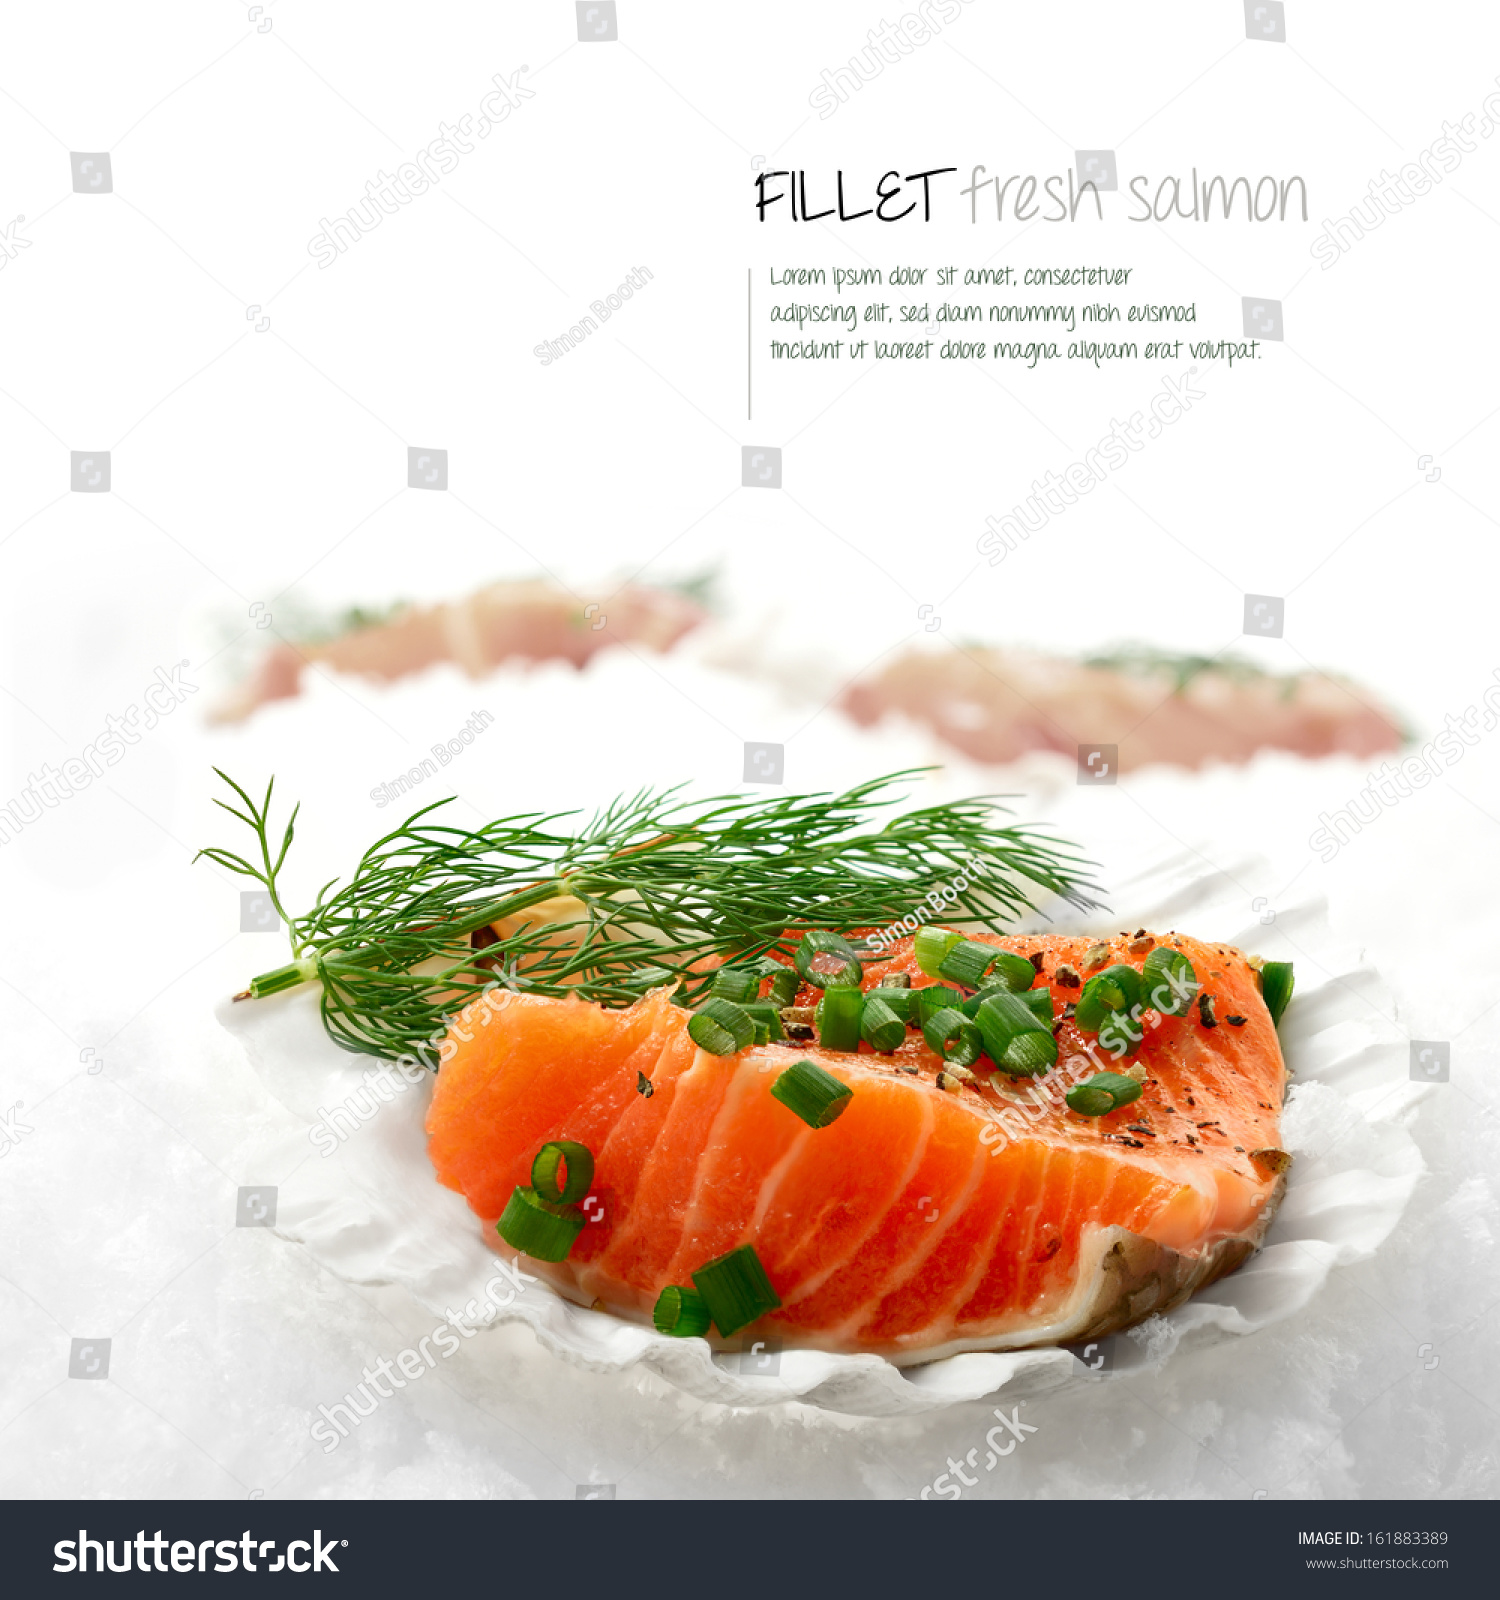 how to cook fresh salmon fillets